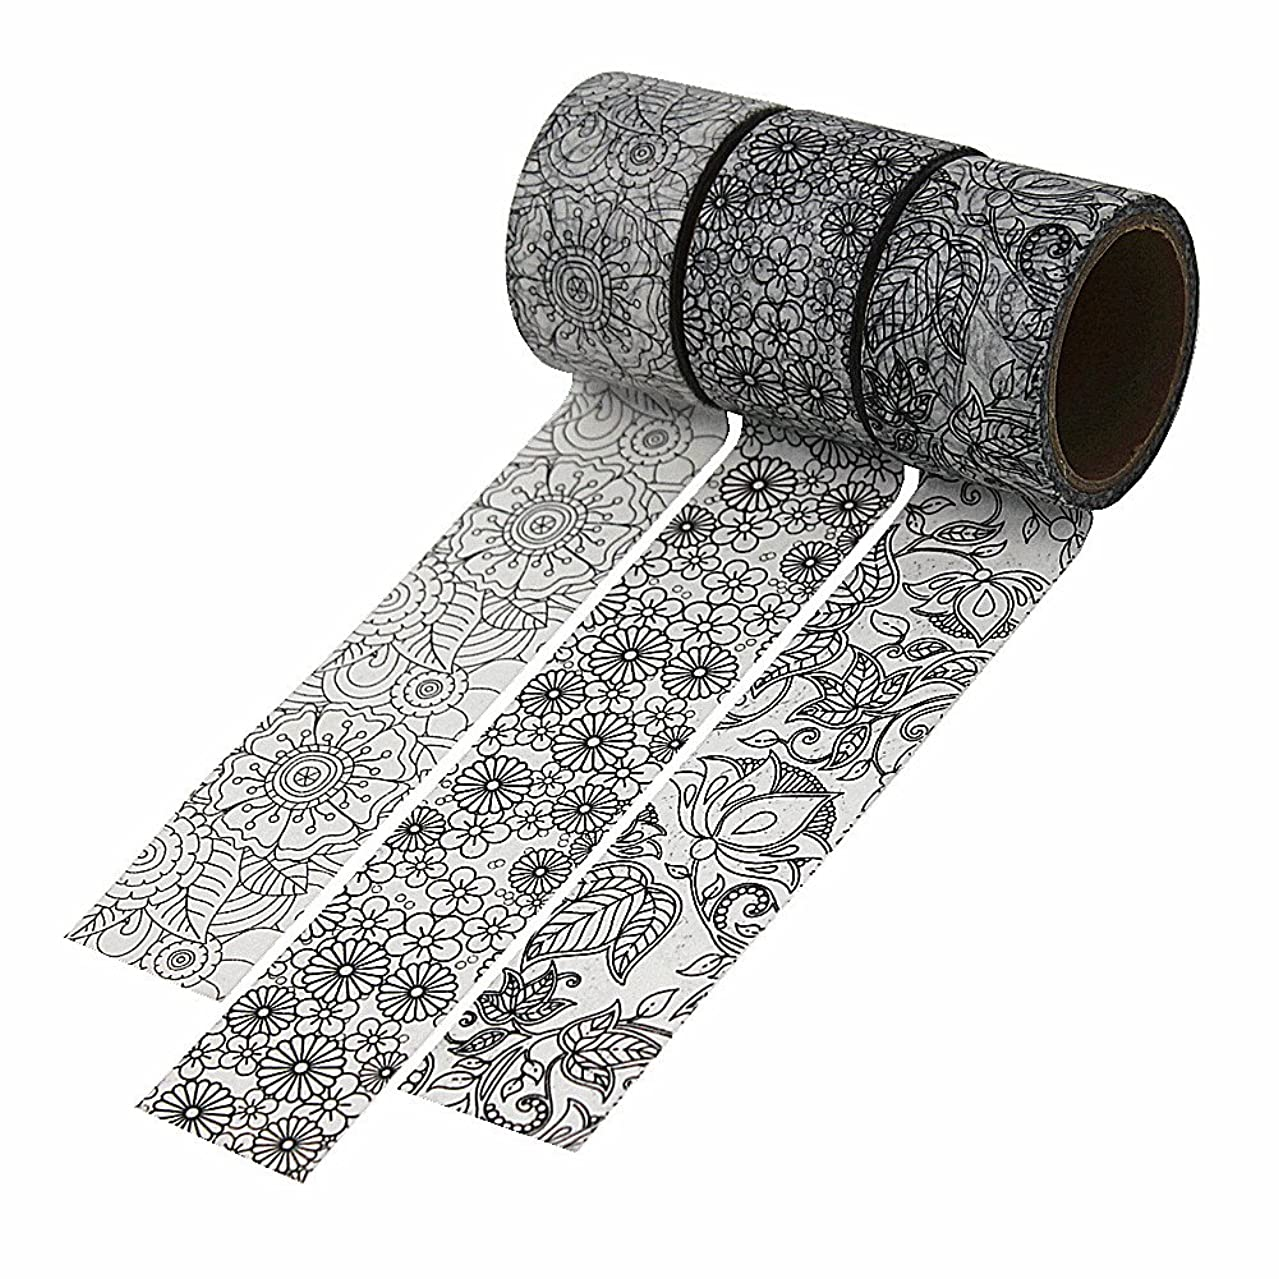 3 Rolls Black White Washi Tape, 30mm Wide Decorative Masking Japanese Paper Tapes Set for Scrapbooking, Room Decorative, Gift Wrapping and Party Supplies - Gray Flower Leaves Plants